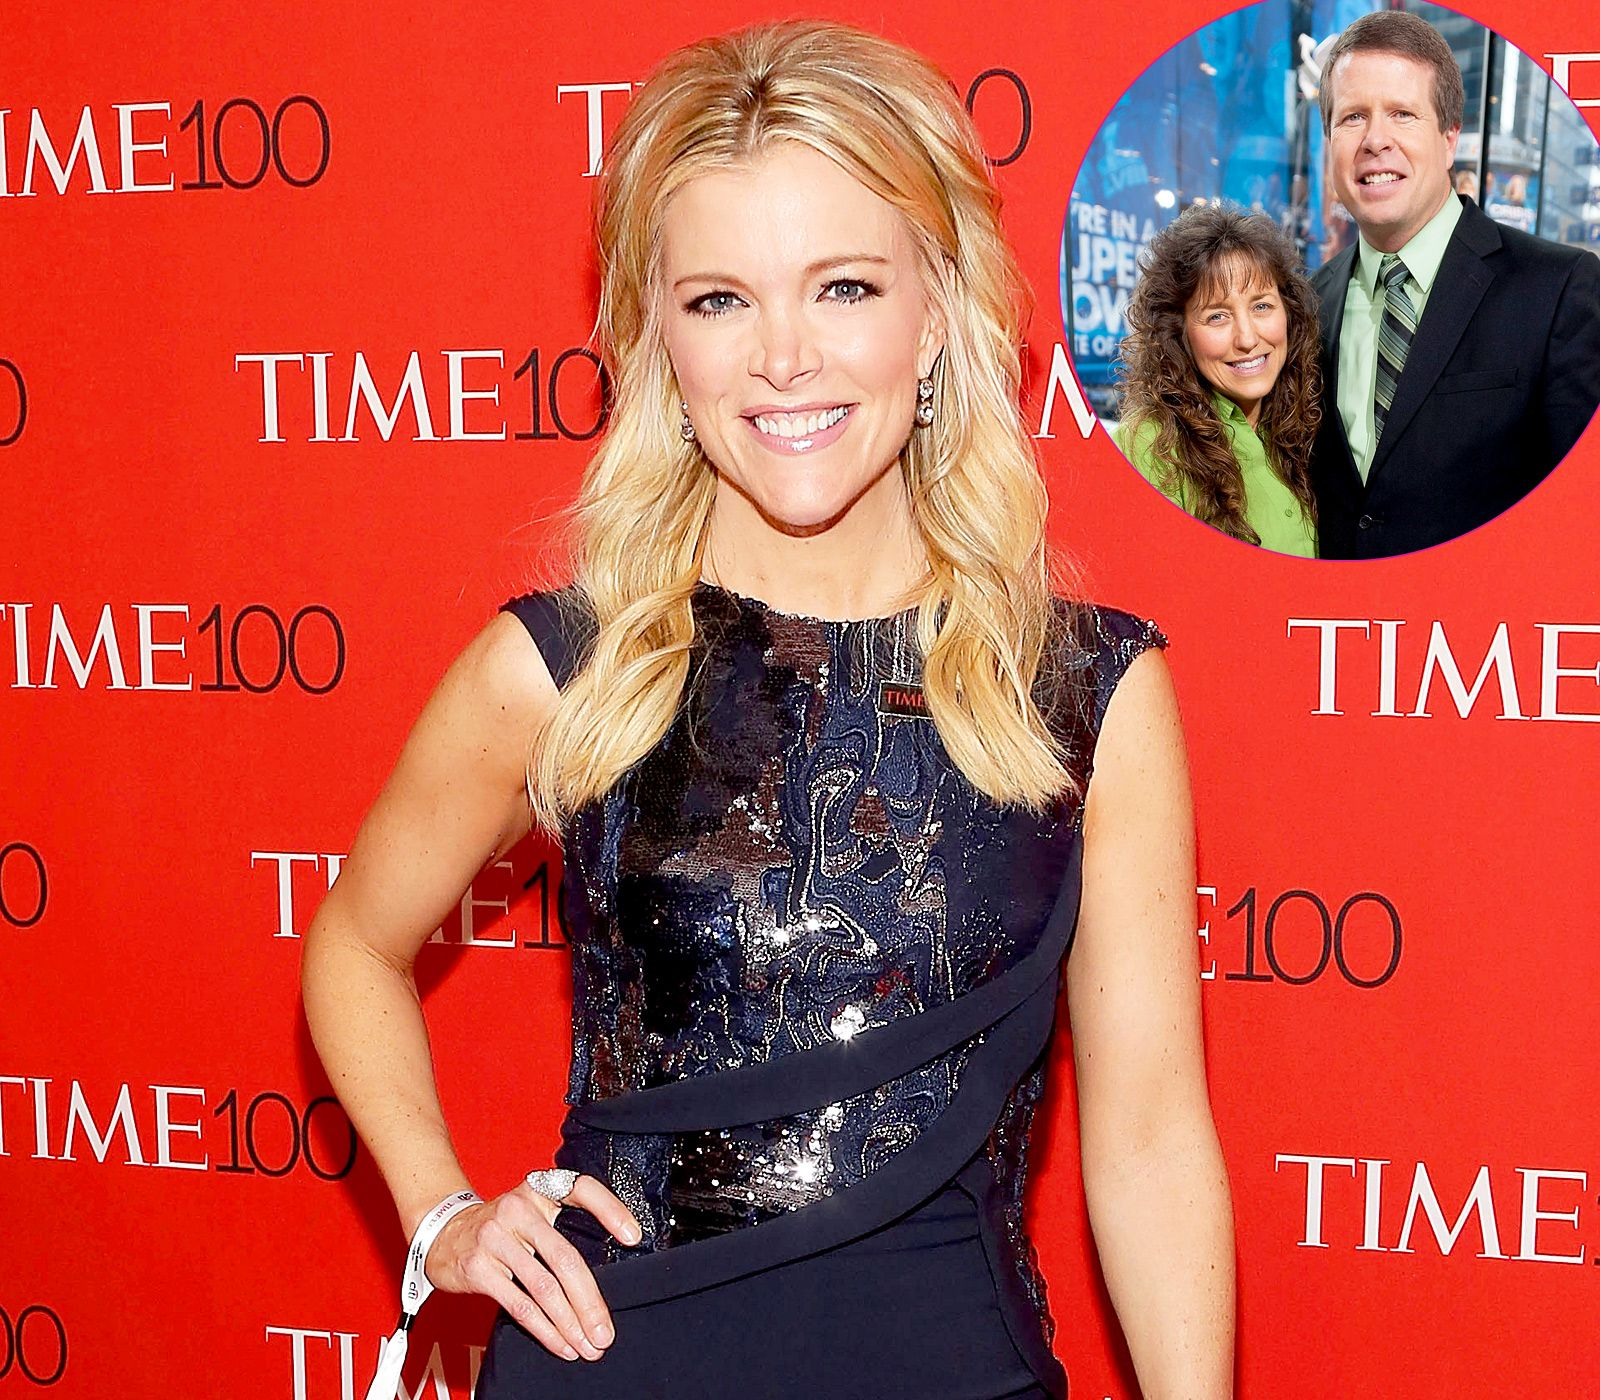 Pictures Of Megyn Kelly Without Makeup Google Search Megyn Kelly Megyn Kelly Young Kelly